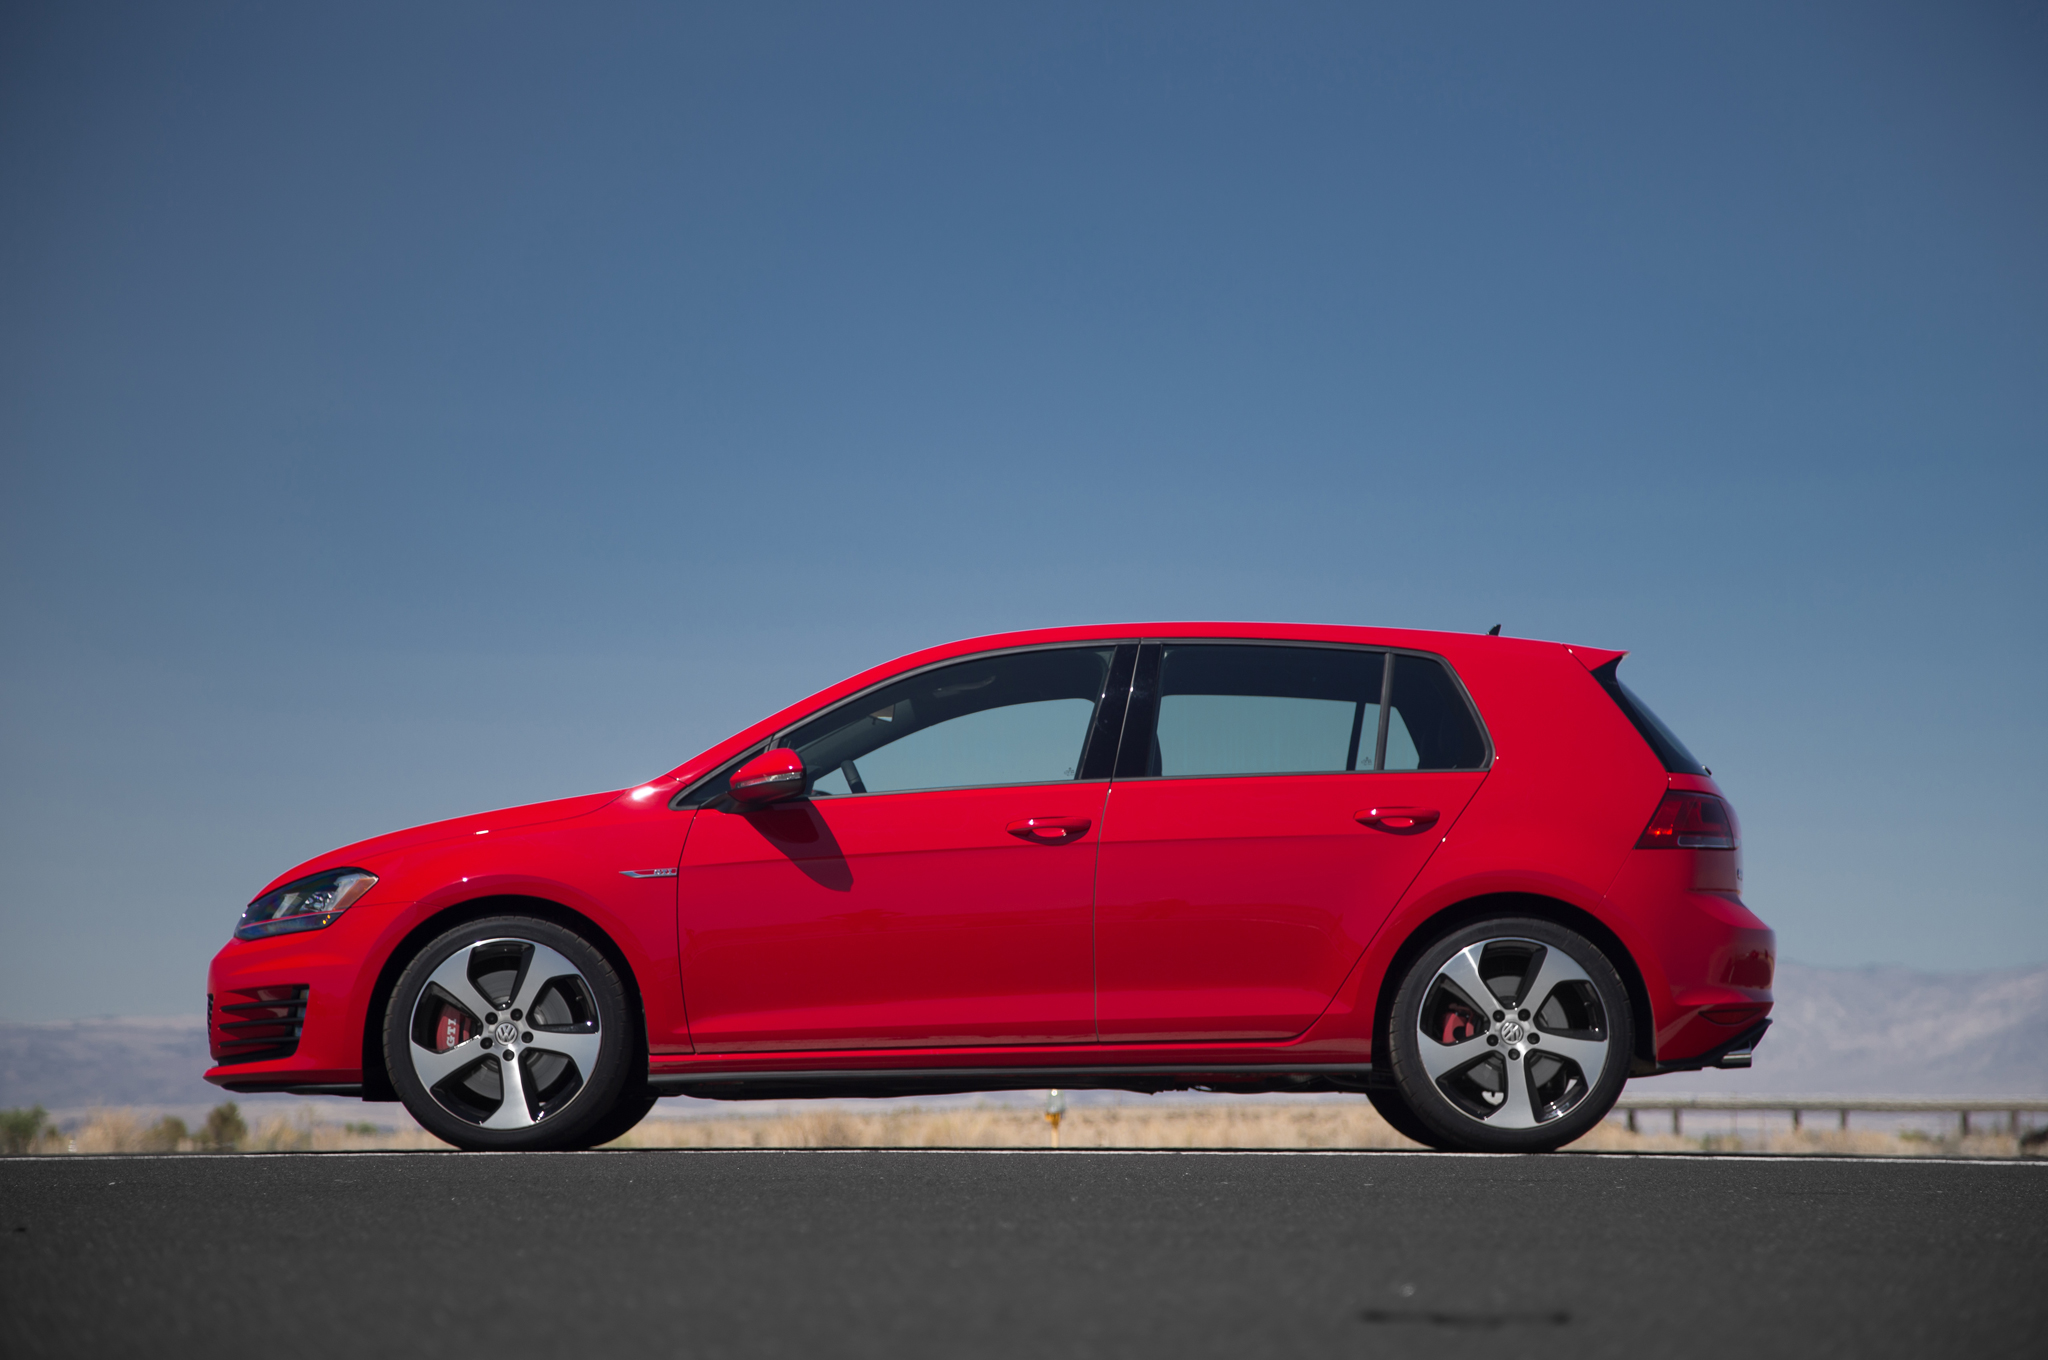 2015 Volkswagen Golf Gti Left Side Photo (Photo 51 of 55)